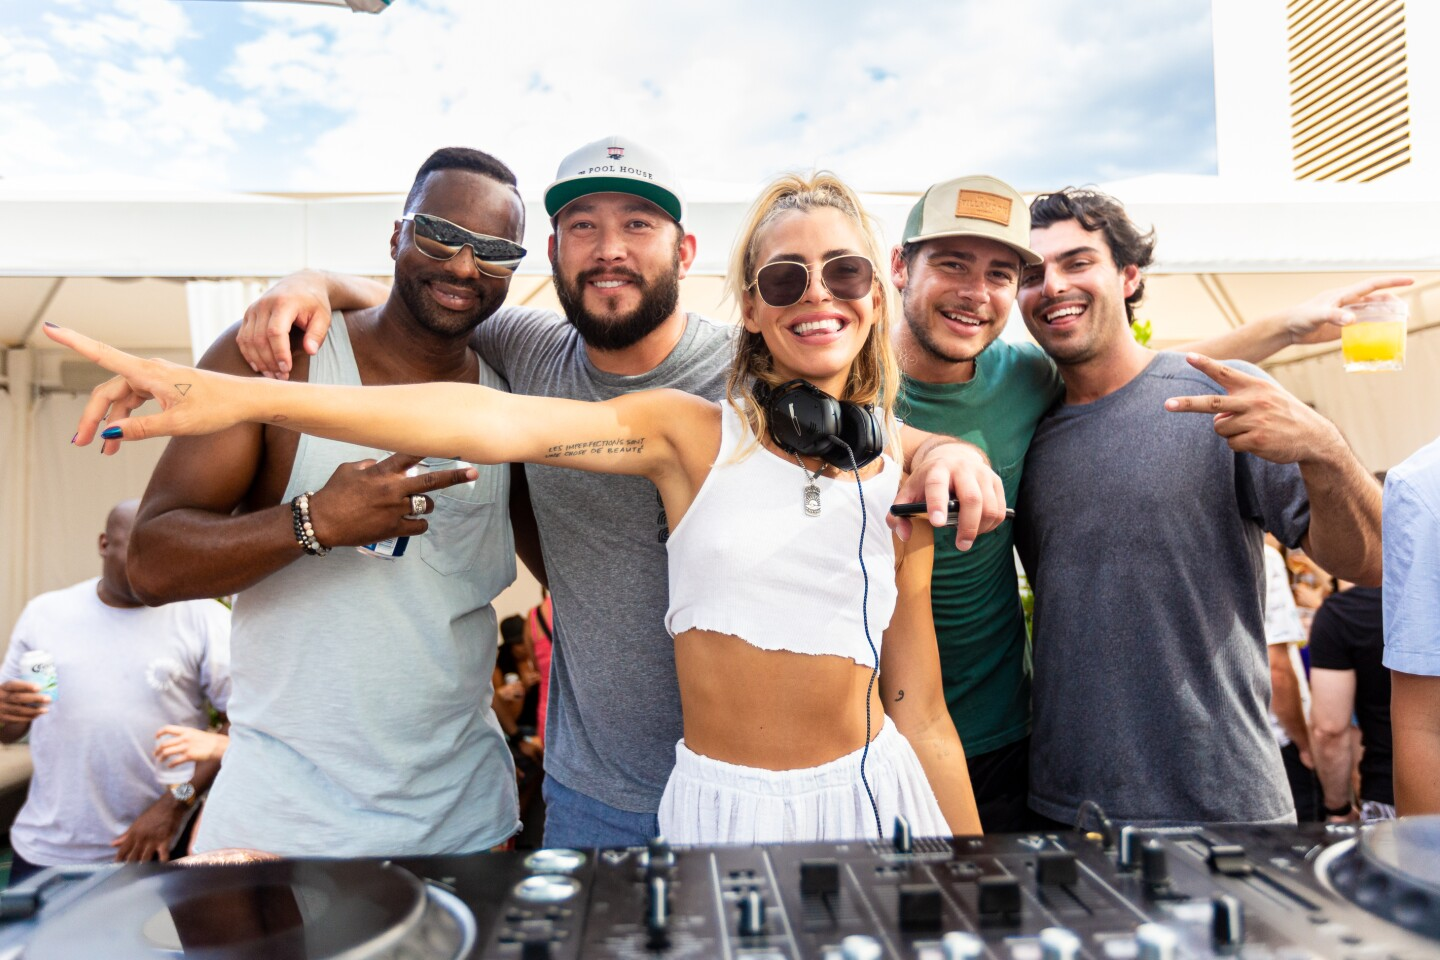 DJ Sam Blacky showed her hometown some love during a set at The Pool House on Sunday, Sept. 1, 2019.